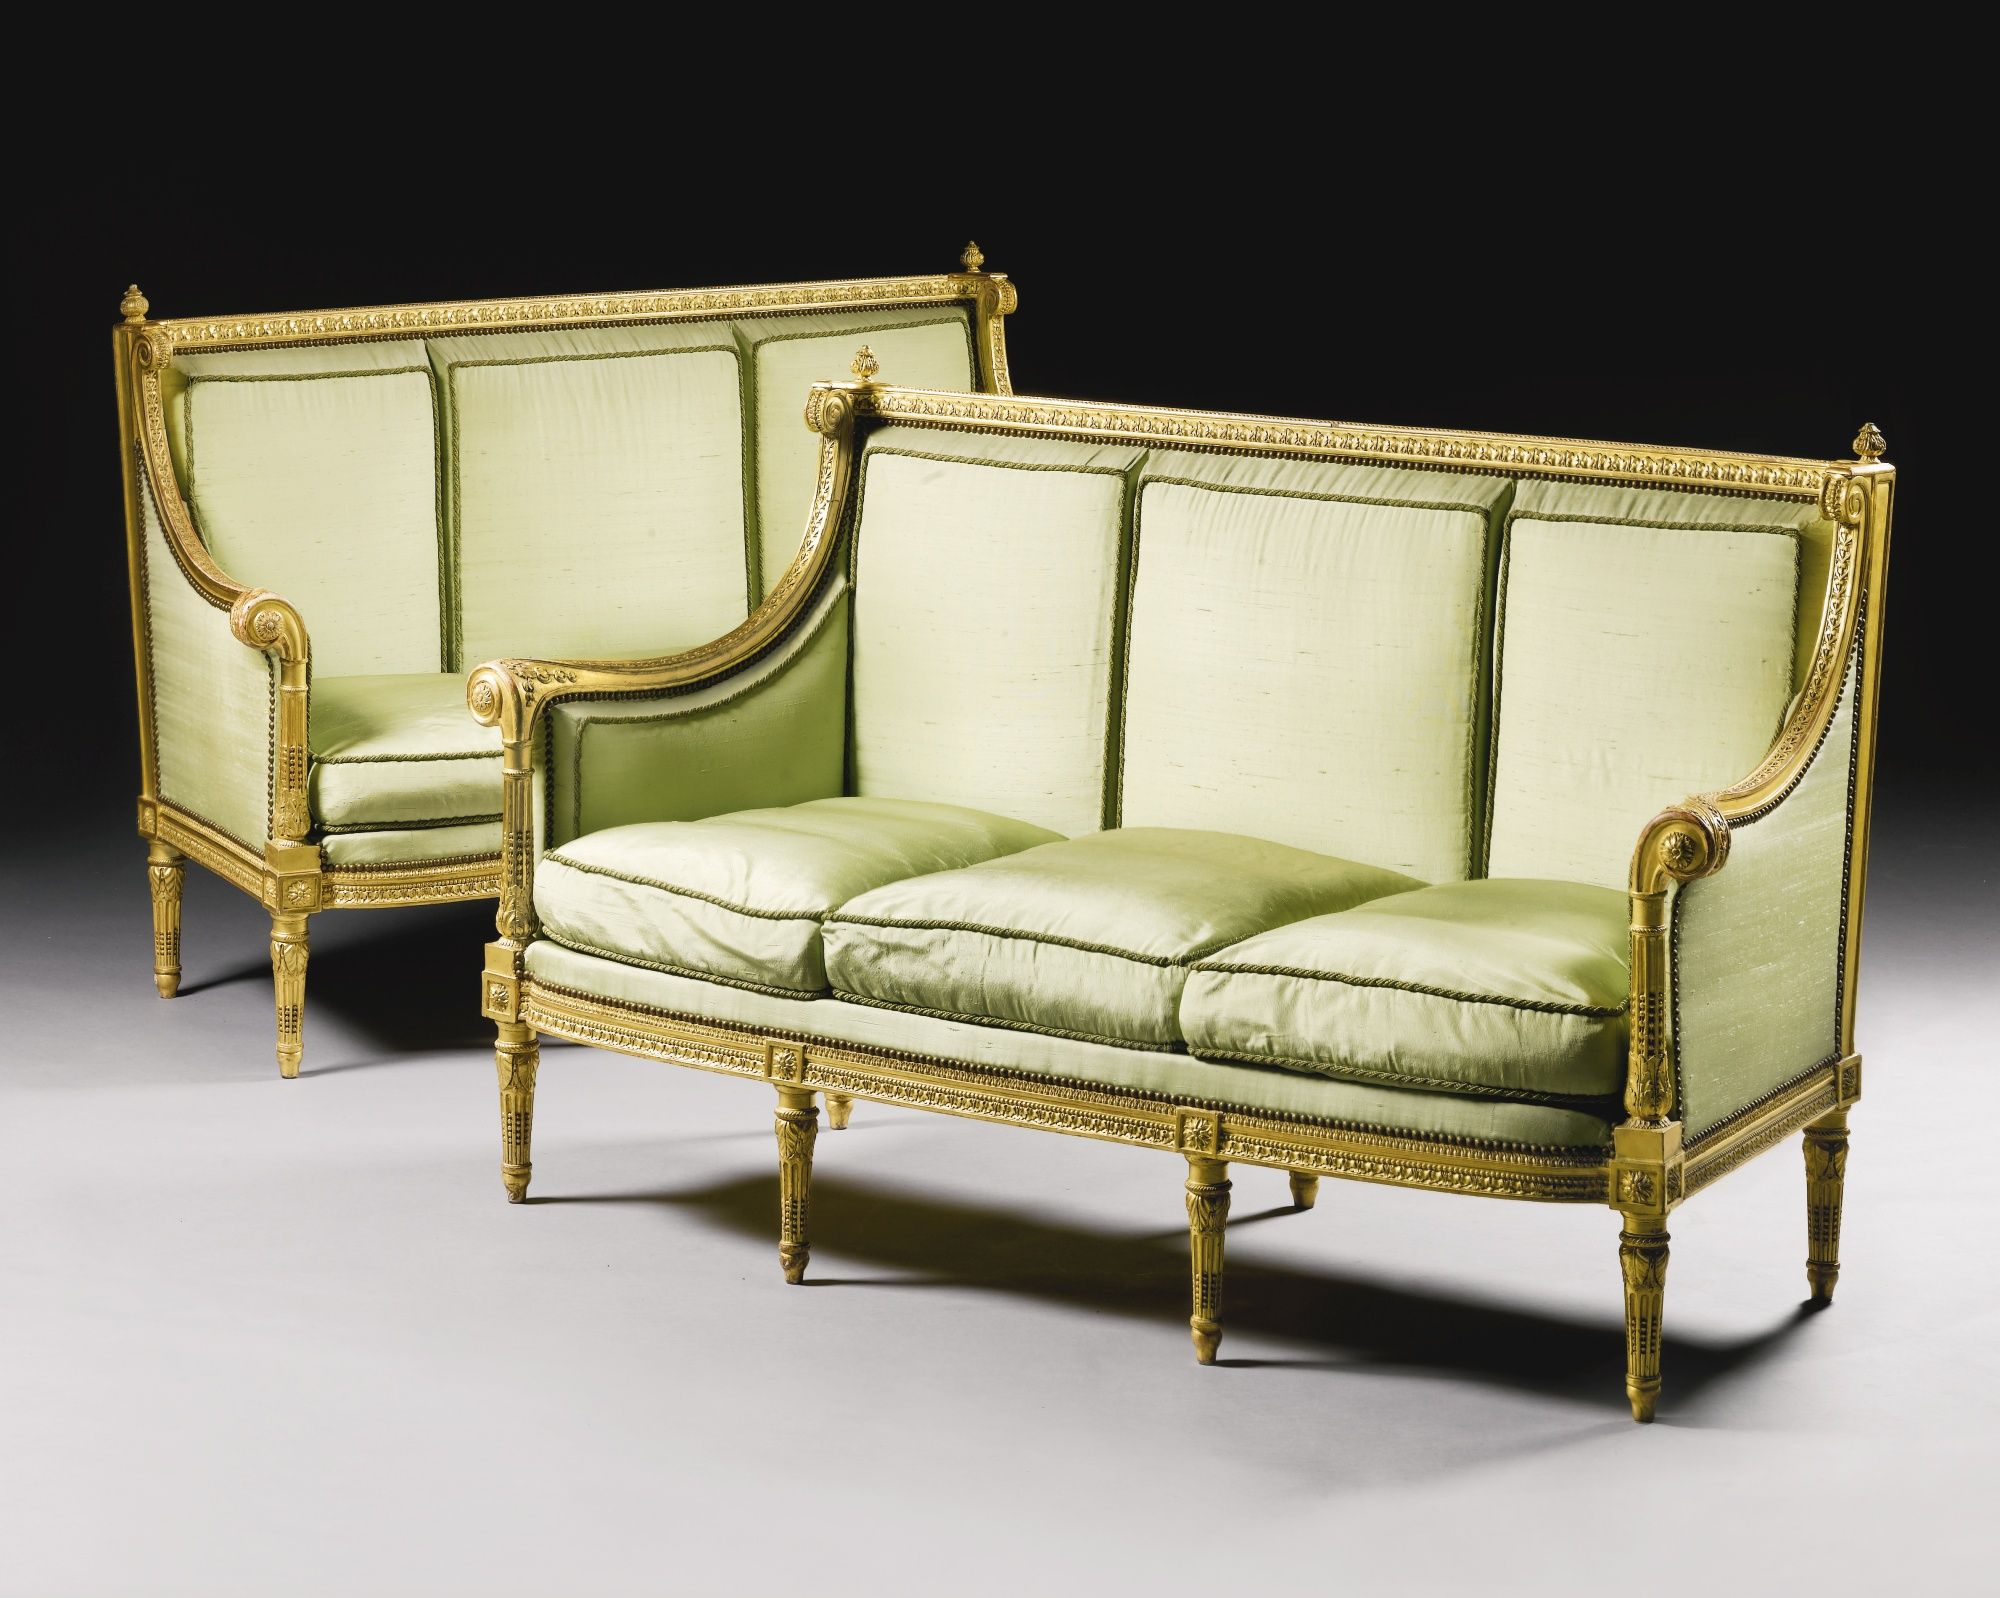 A Pair Of Carved Giltwood Canap 201 S Attributed To Georges